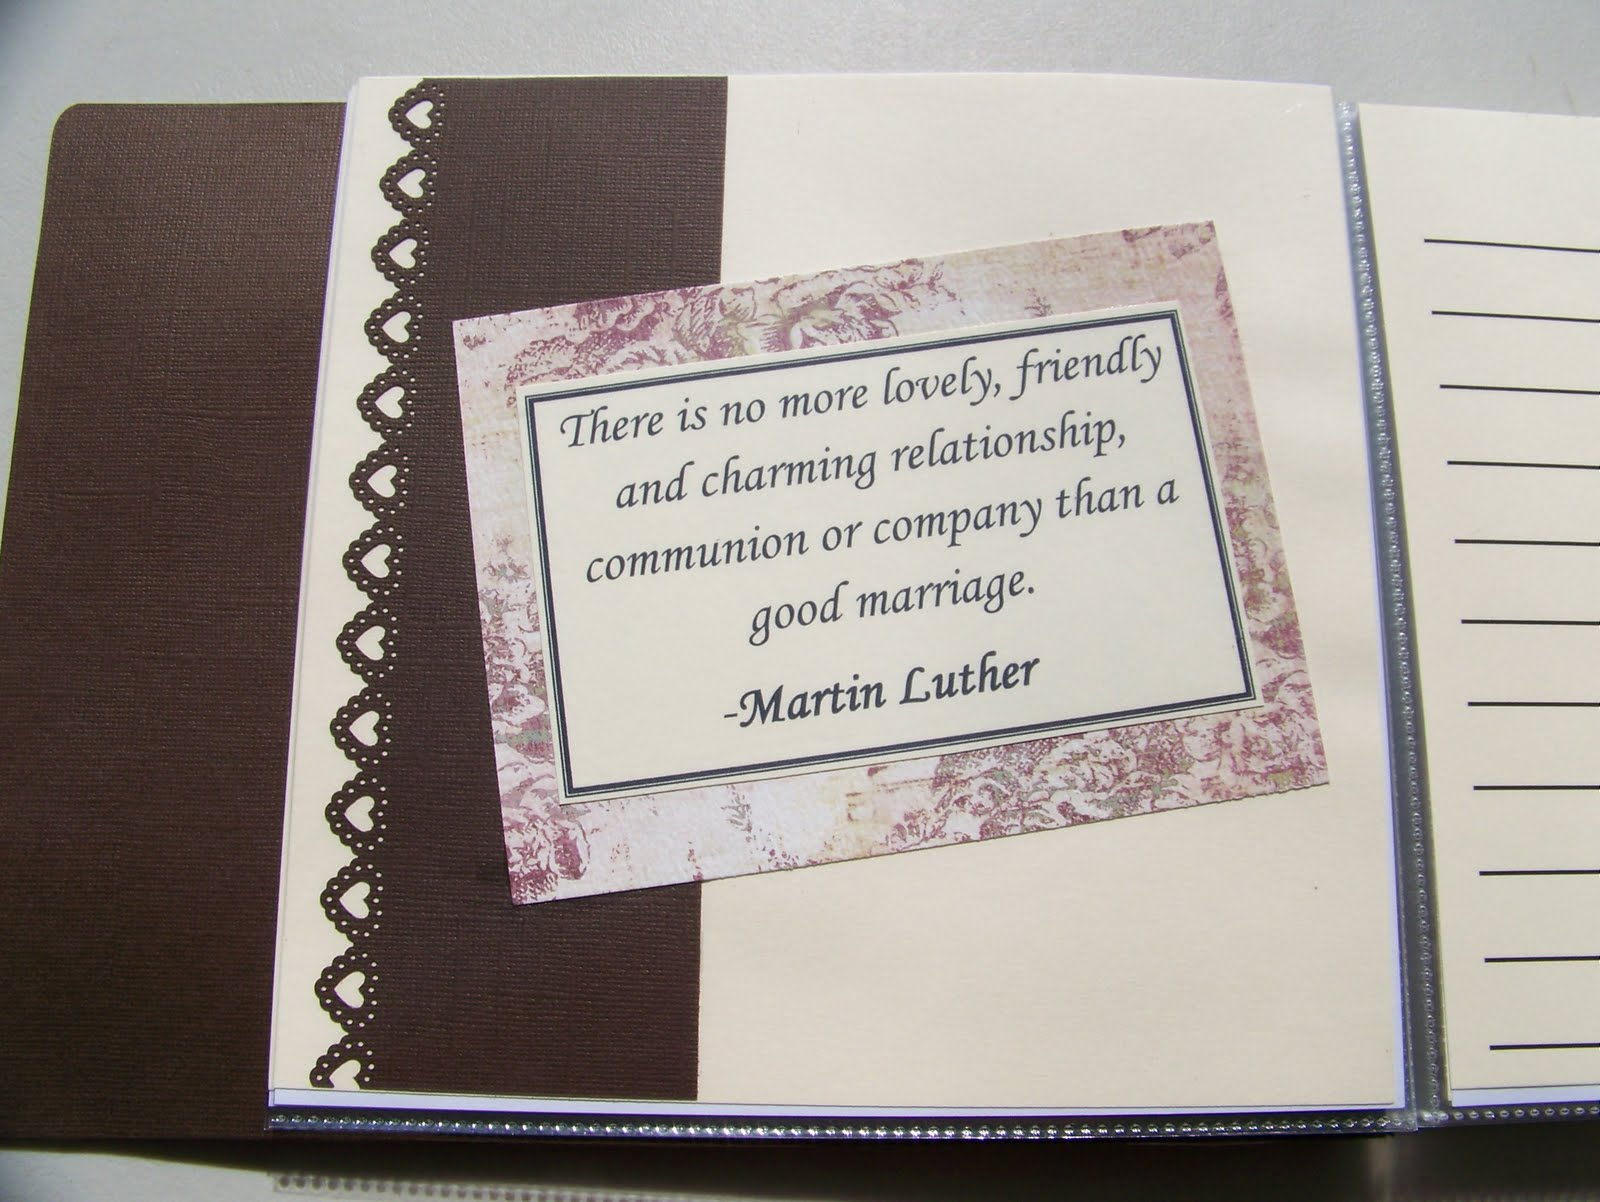 Quotes For Wedding Gift Card : There are 6 pages that I used these quotes.